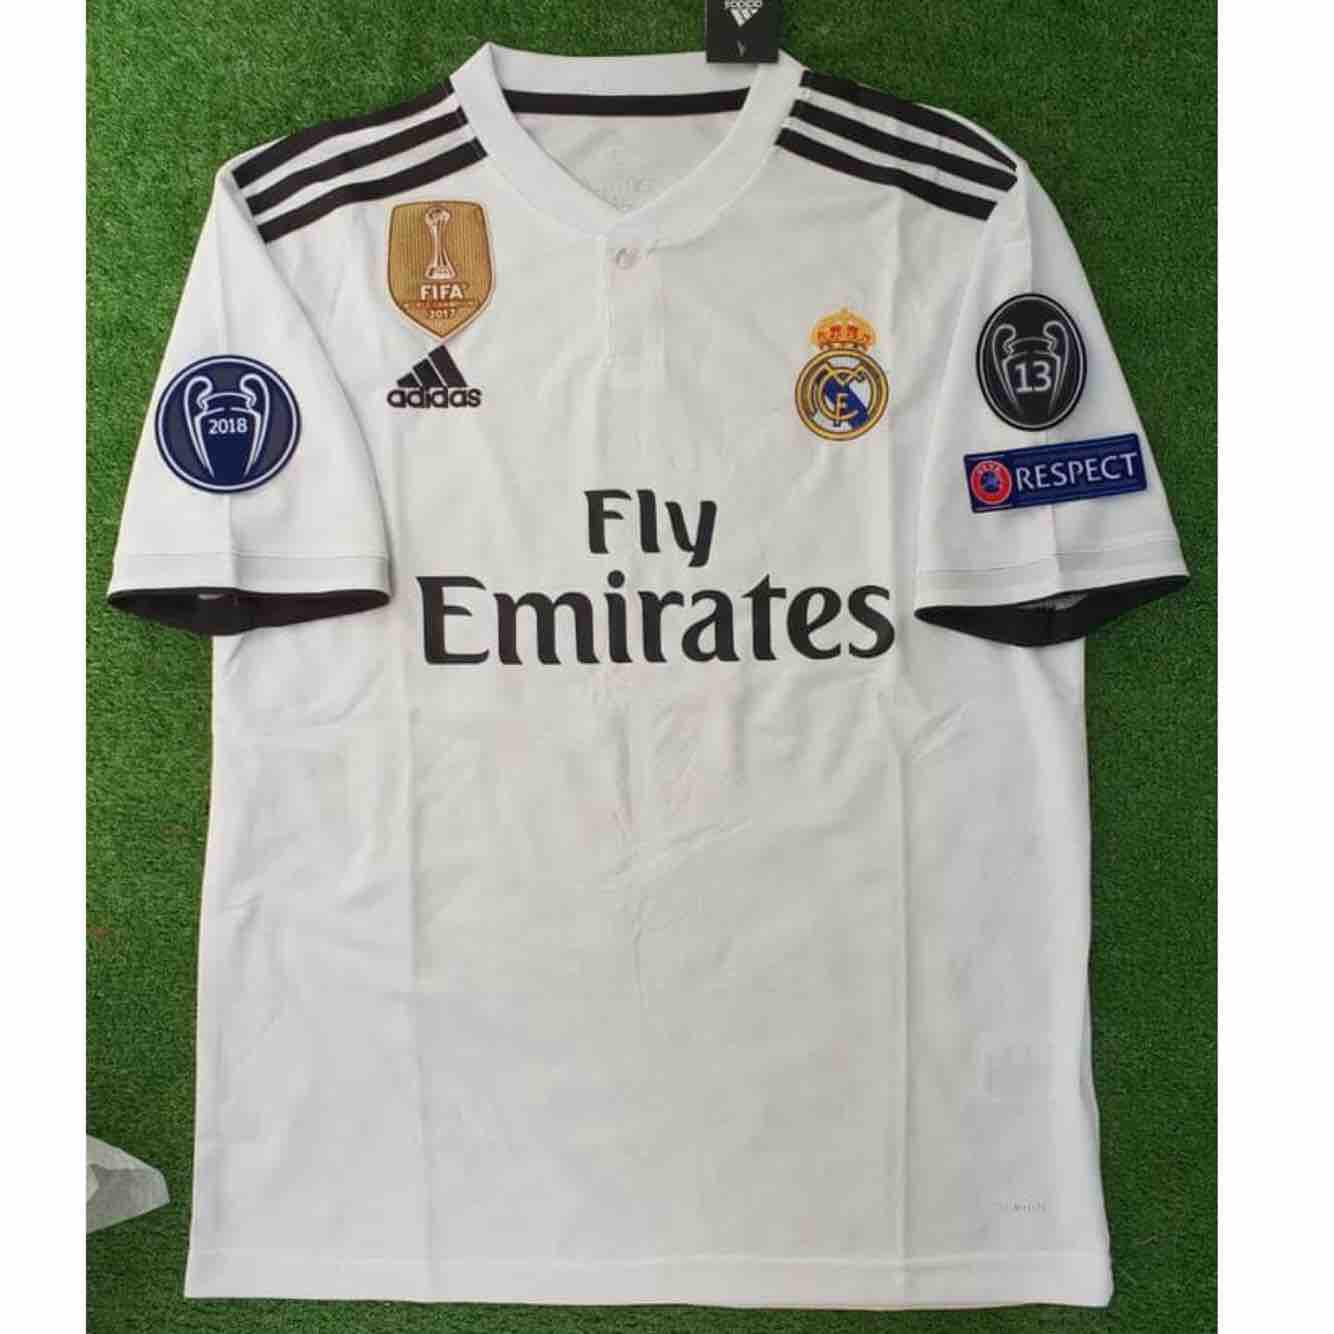 JERSEY BOLA REAL MADRID HOME 2018/2019 FULL PATCH UCL - BAJU BOLA - KAOS